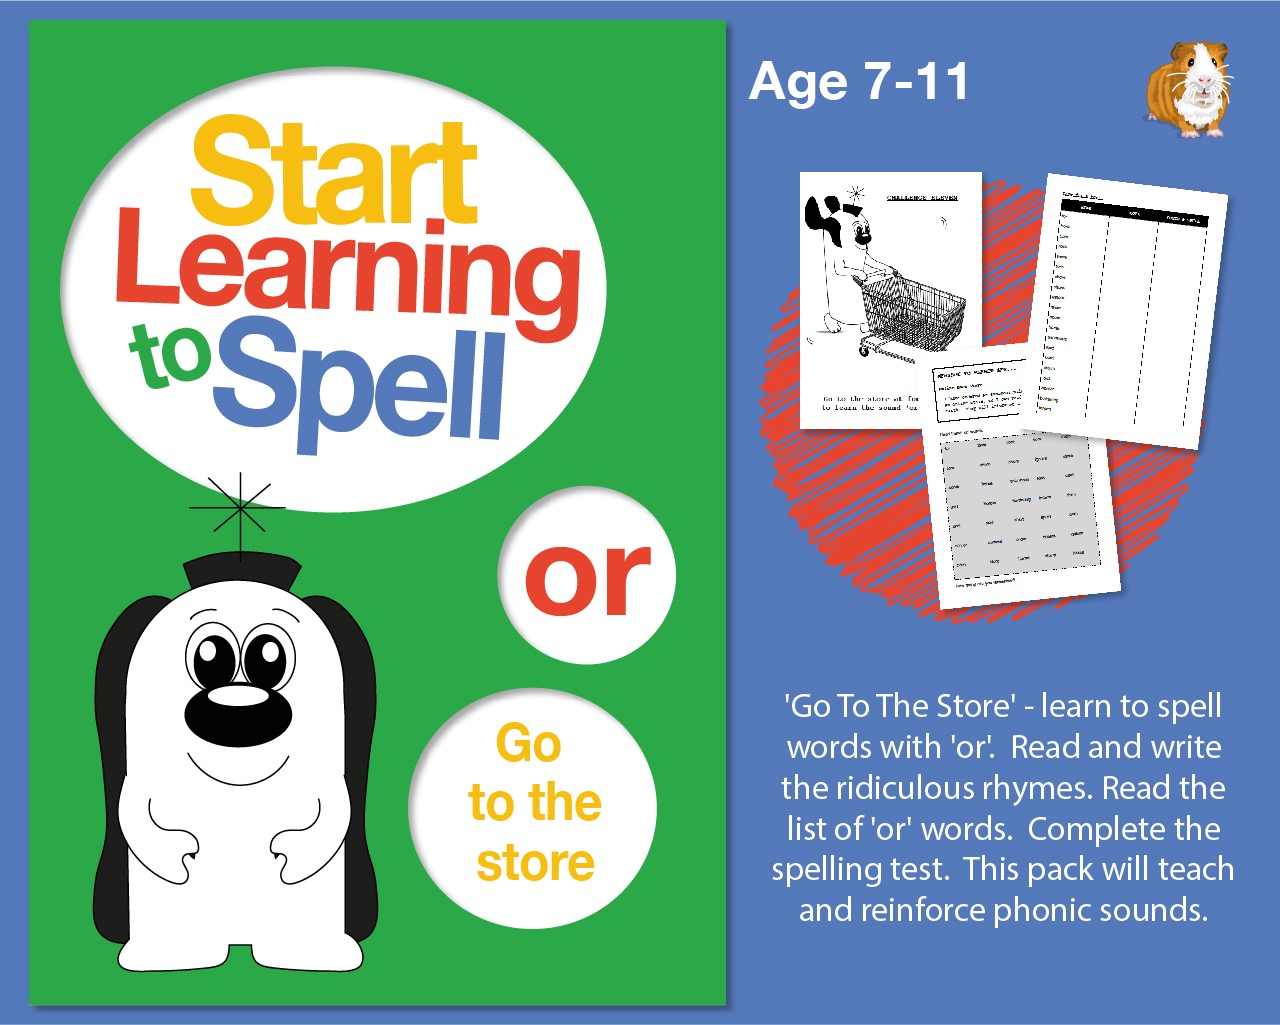 'Go To The Store' Learn To Spell Words With 'or' (7-11 years)